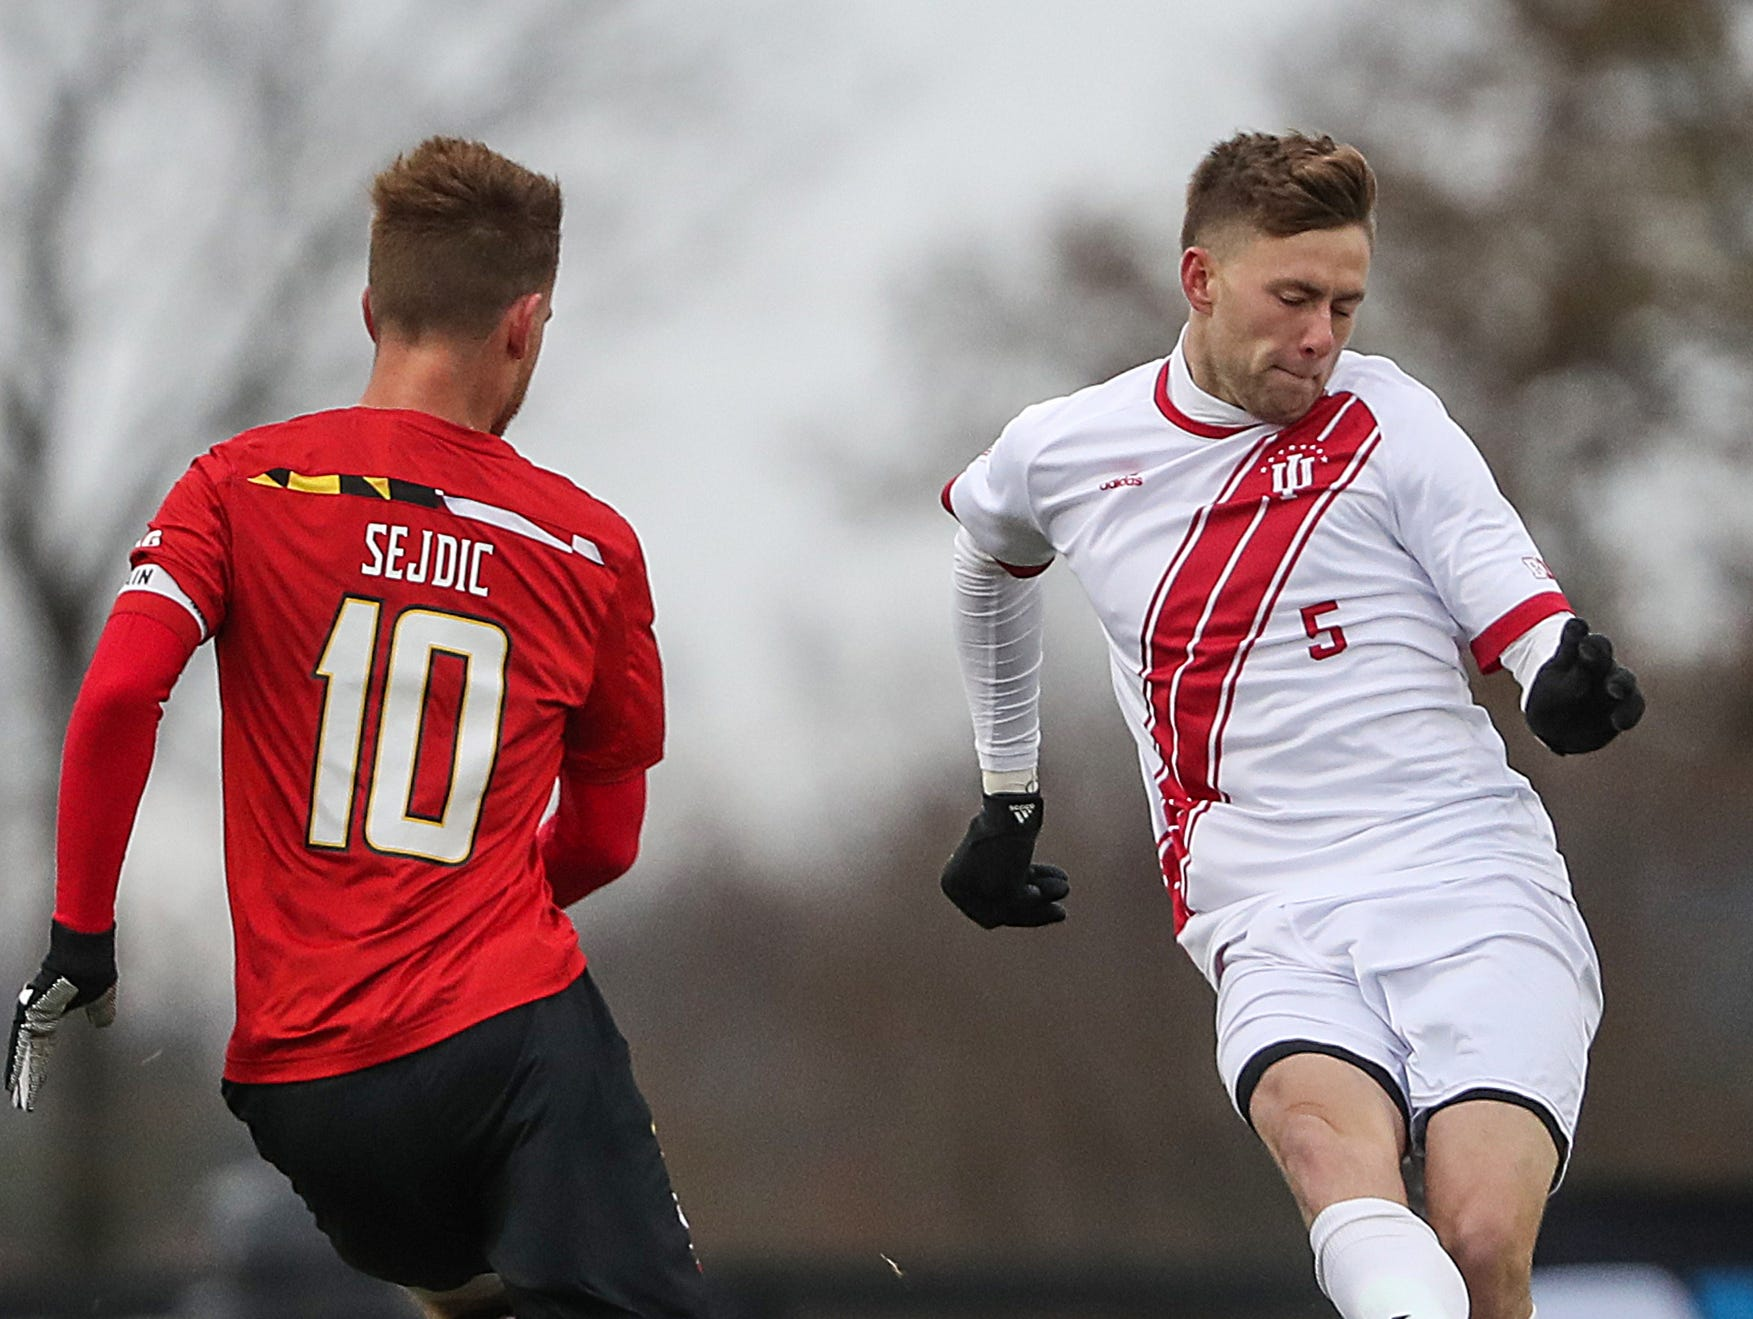 Indiana Hoosiers Grant Lillard (5) moves the ball past Maryland Terrapins midfielder Amar Sejdic (10) during the first half of Big Ten semifinals at Grand Park in Westfield, Ind., Friday, Nov. 9, 2018. Indiana and Maryland tied 1-1, with the Hoosiers advancing in penalty kicks, 4-3.